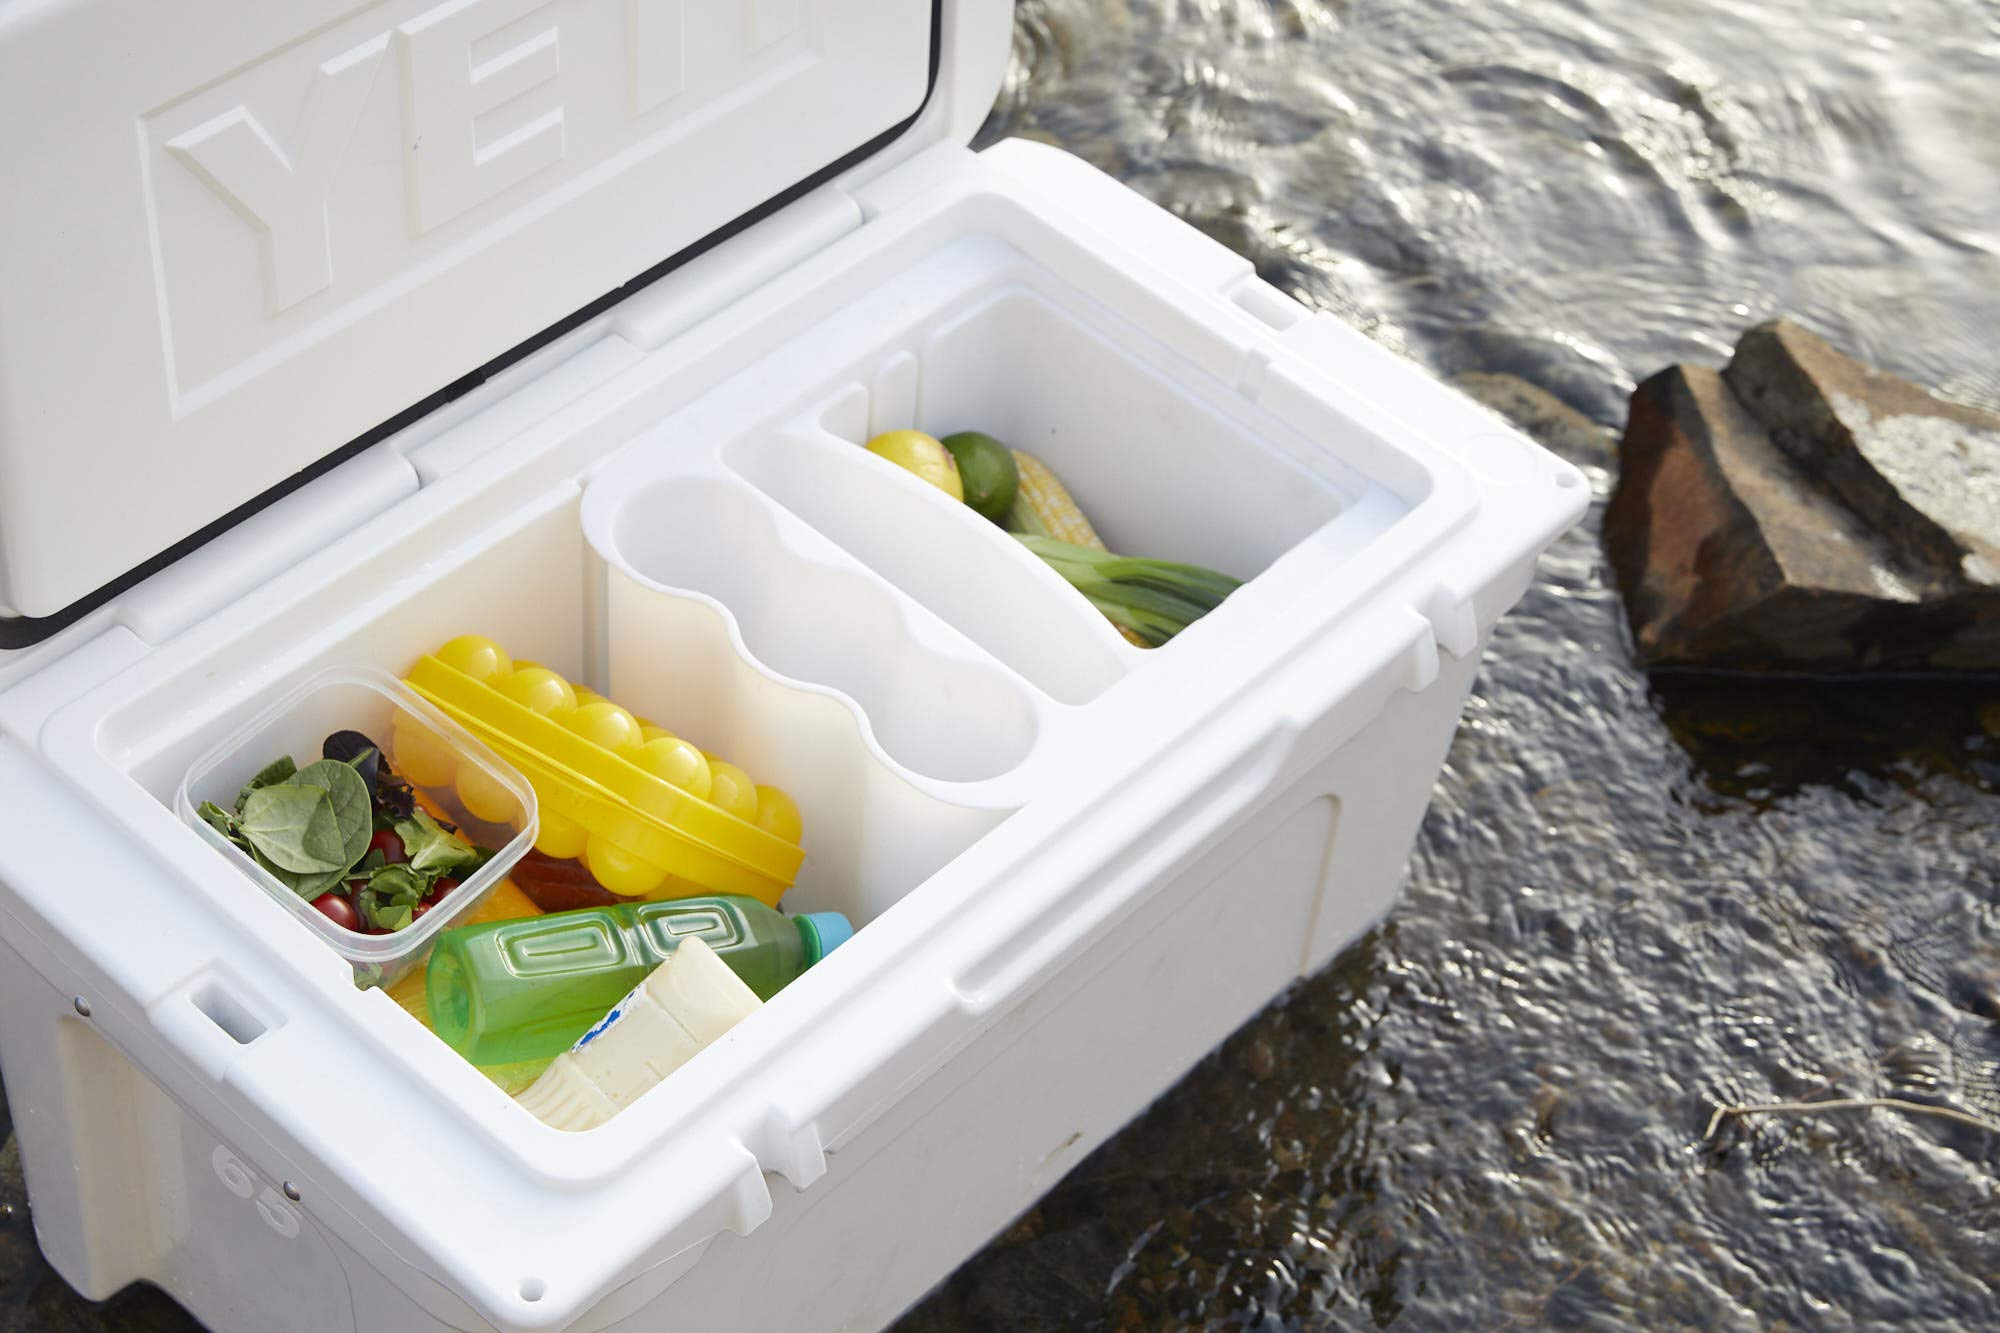 JOEE Small Cooler Organizer (Small) 11'' Wide- The World's Best Cooler Accessory with 5 Amazing Features Order Now by JOEE